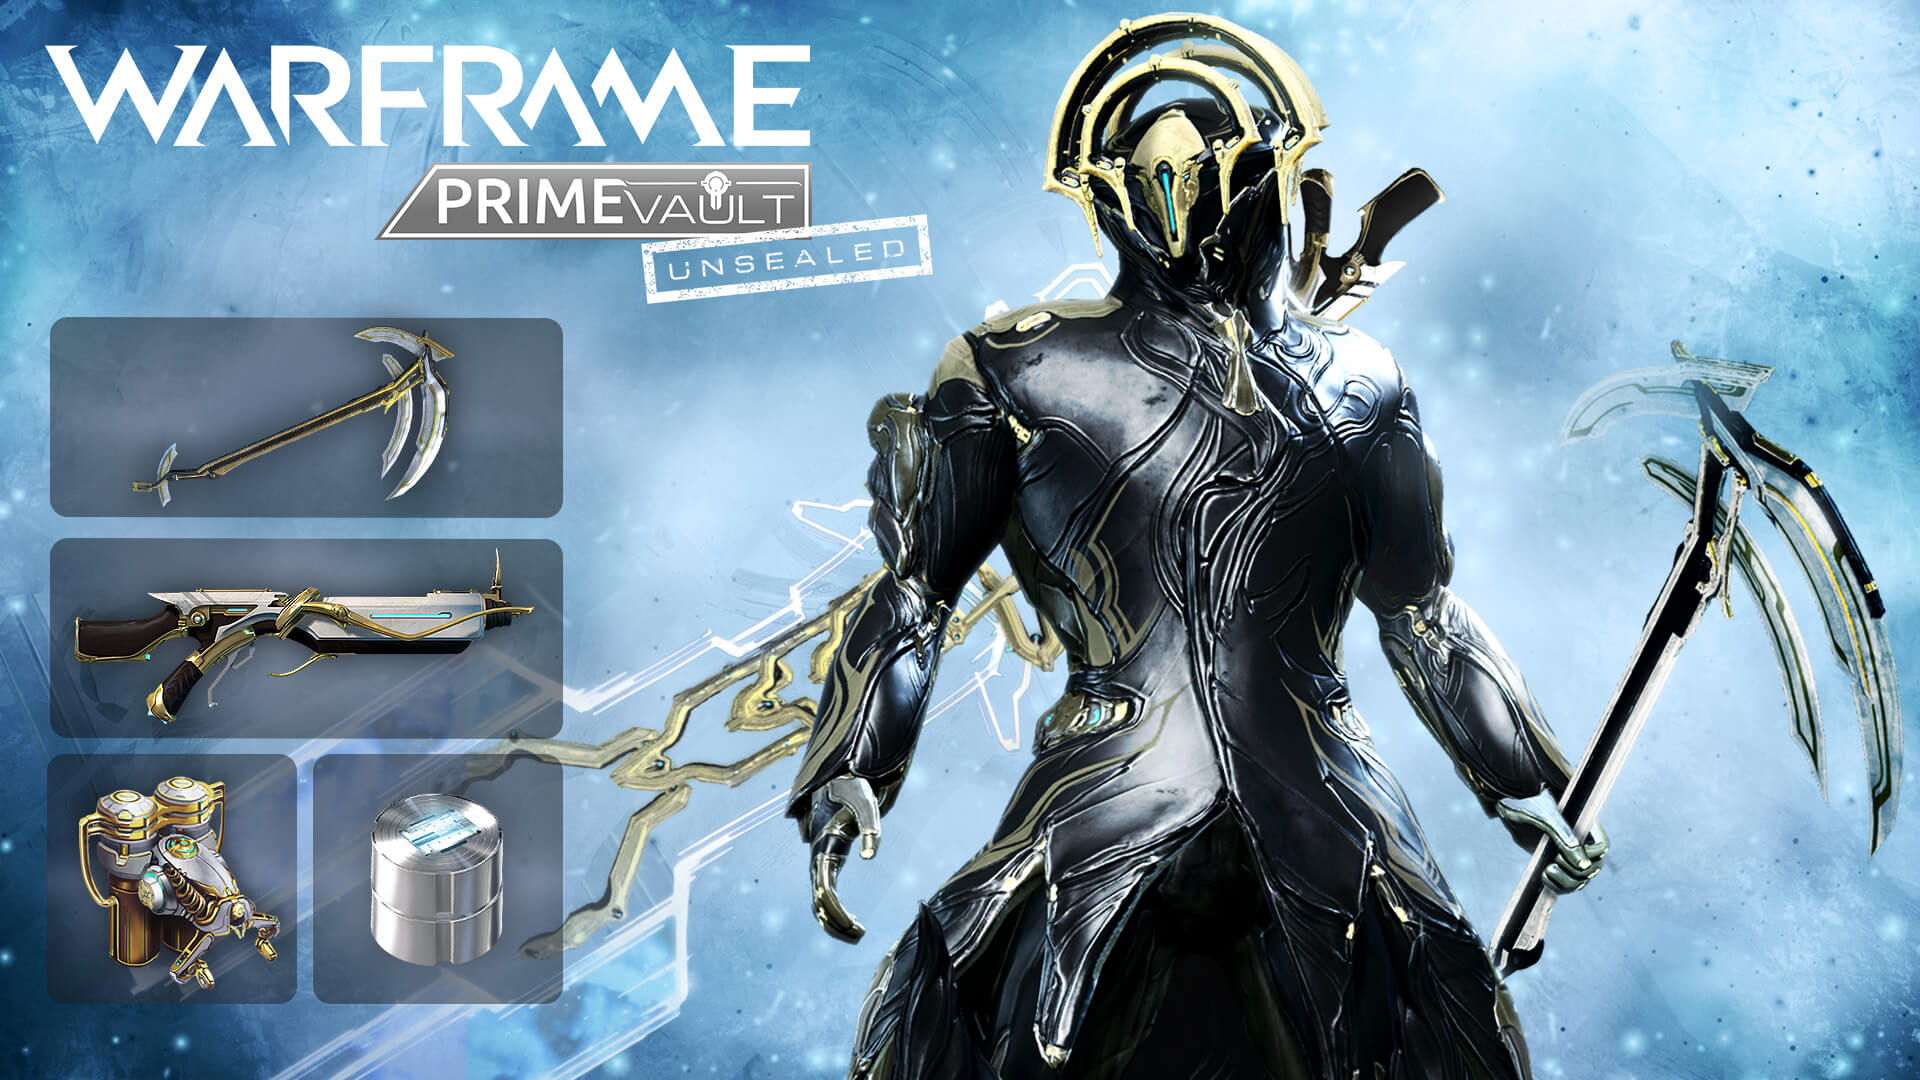 Warframe mod apk download for pc, ios and android